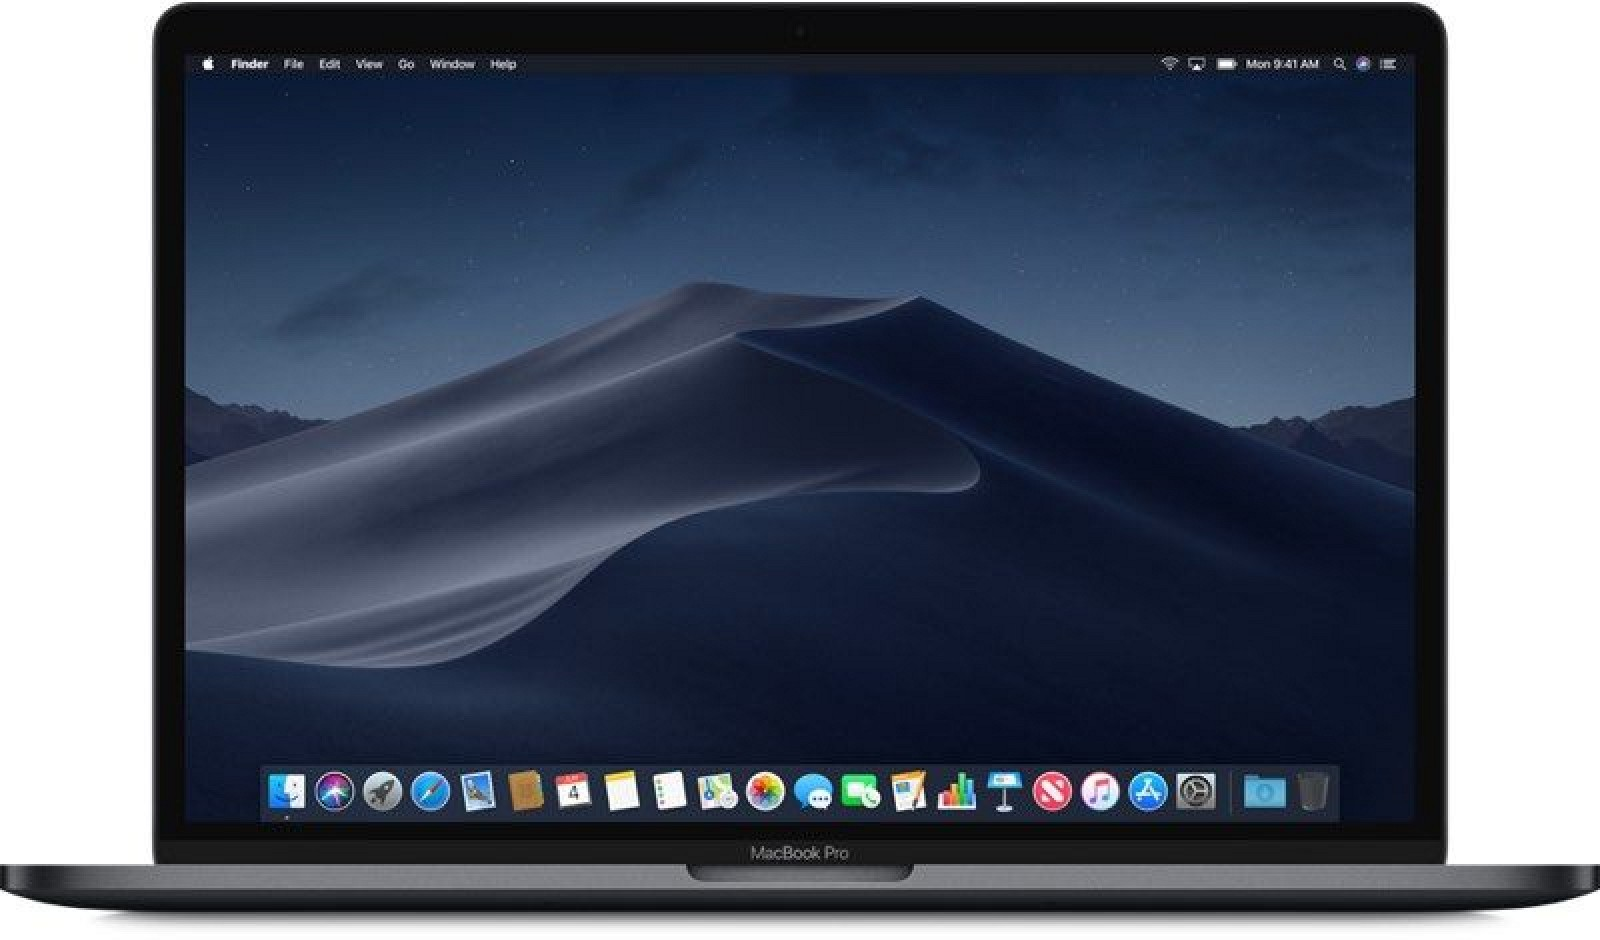 Tests Confirm Apples Throttling Fix Improves Performance For 2018 Lighting Diagram Creator Mac Macbook Pro Models Updated Macrumors